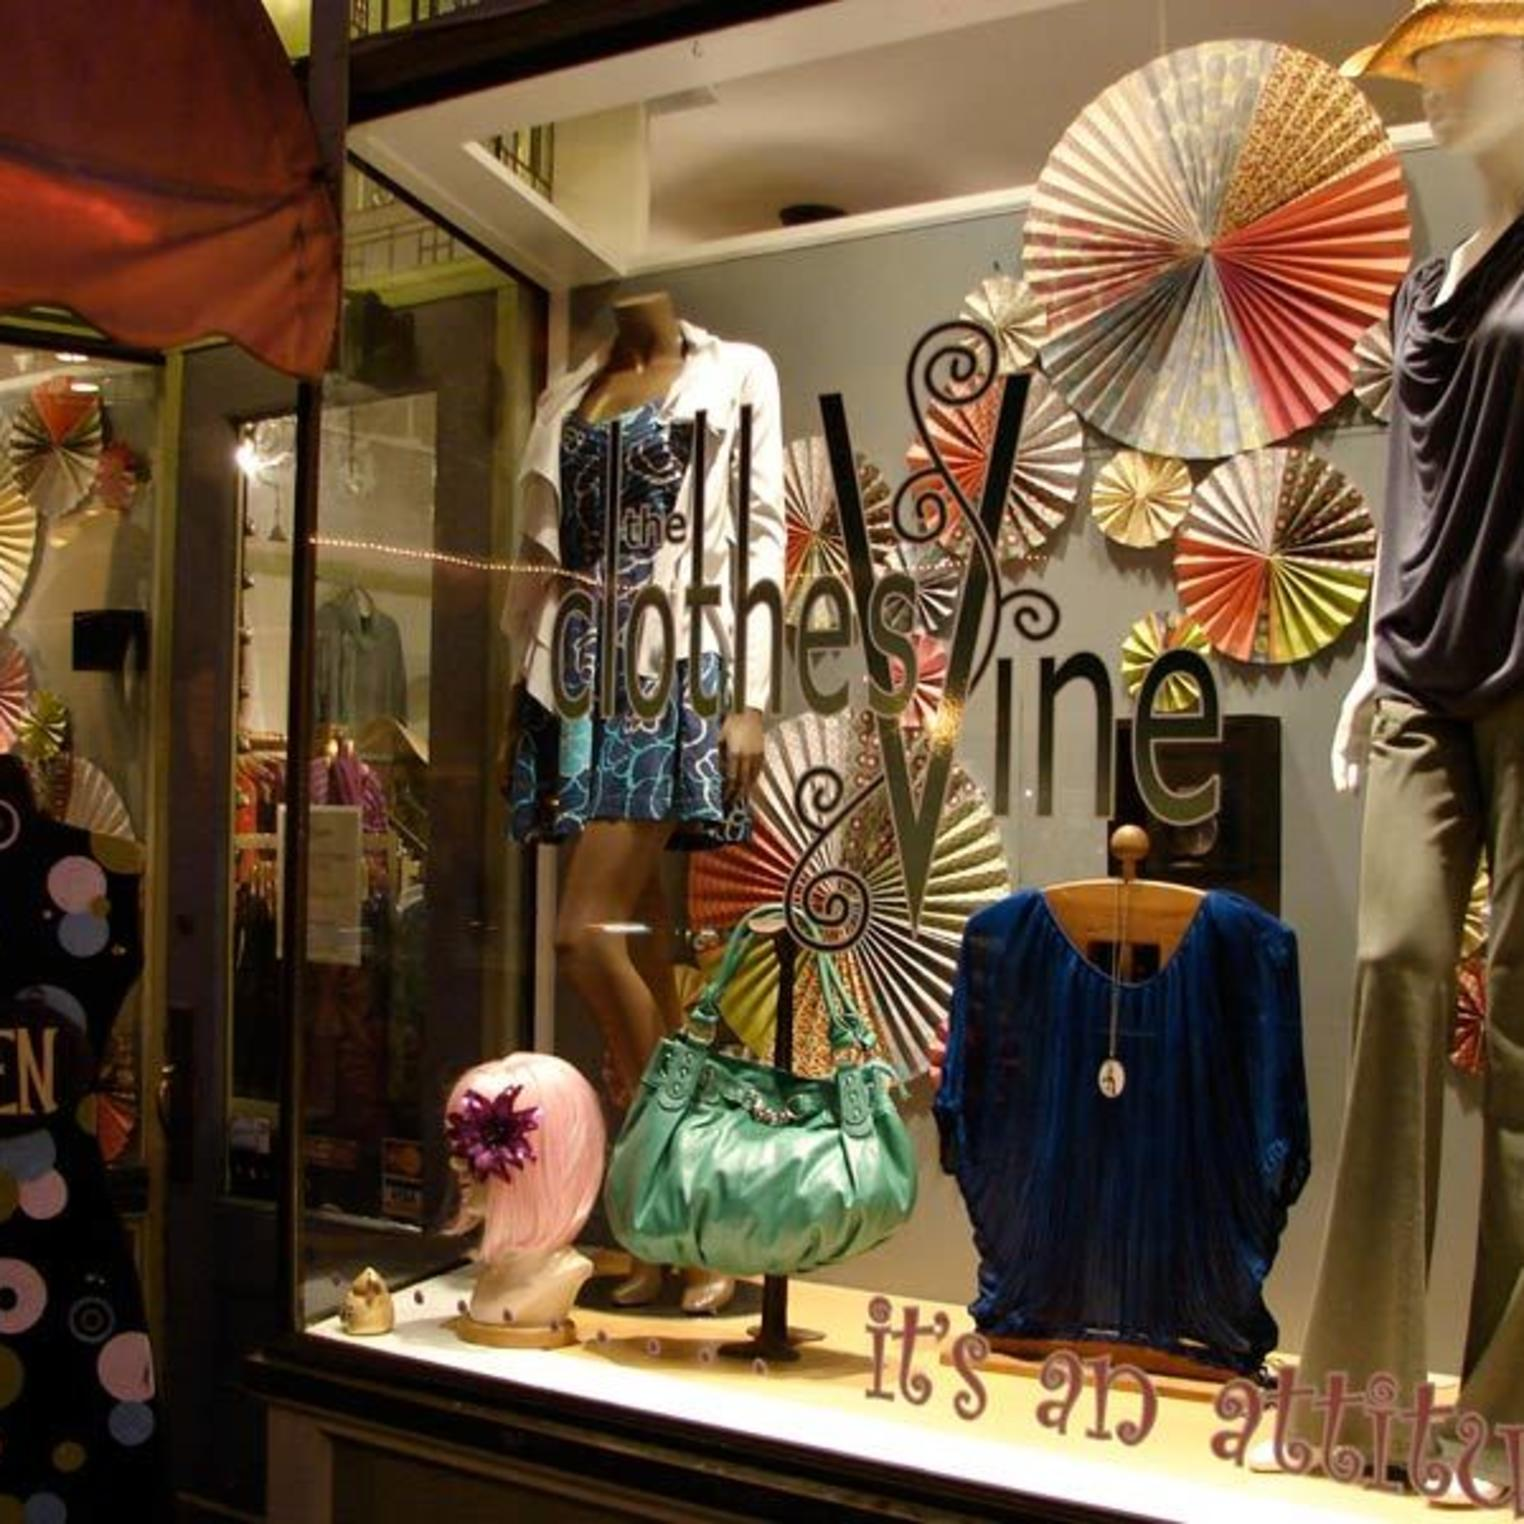 ClothesVine Display Window